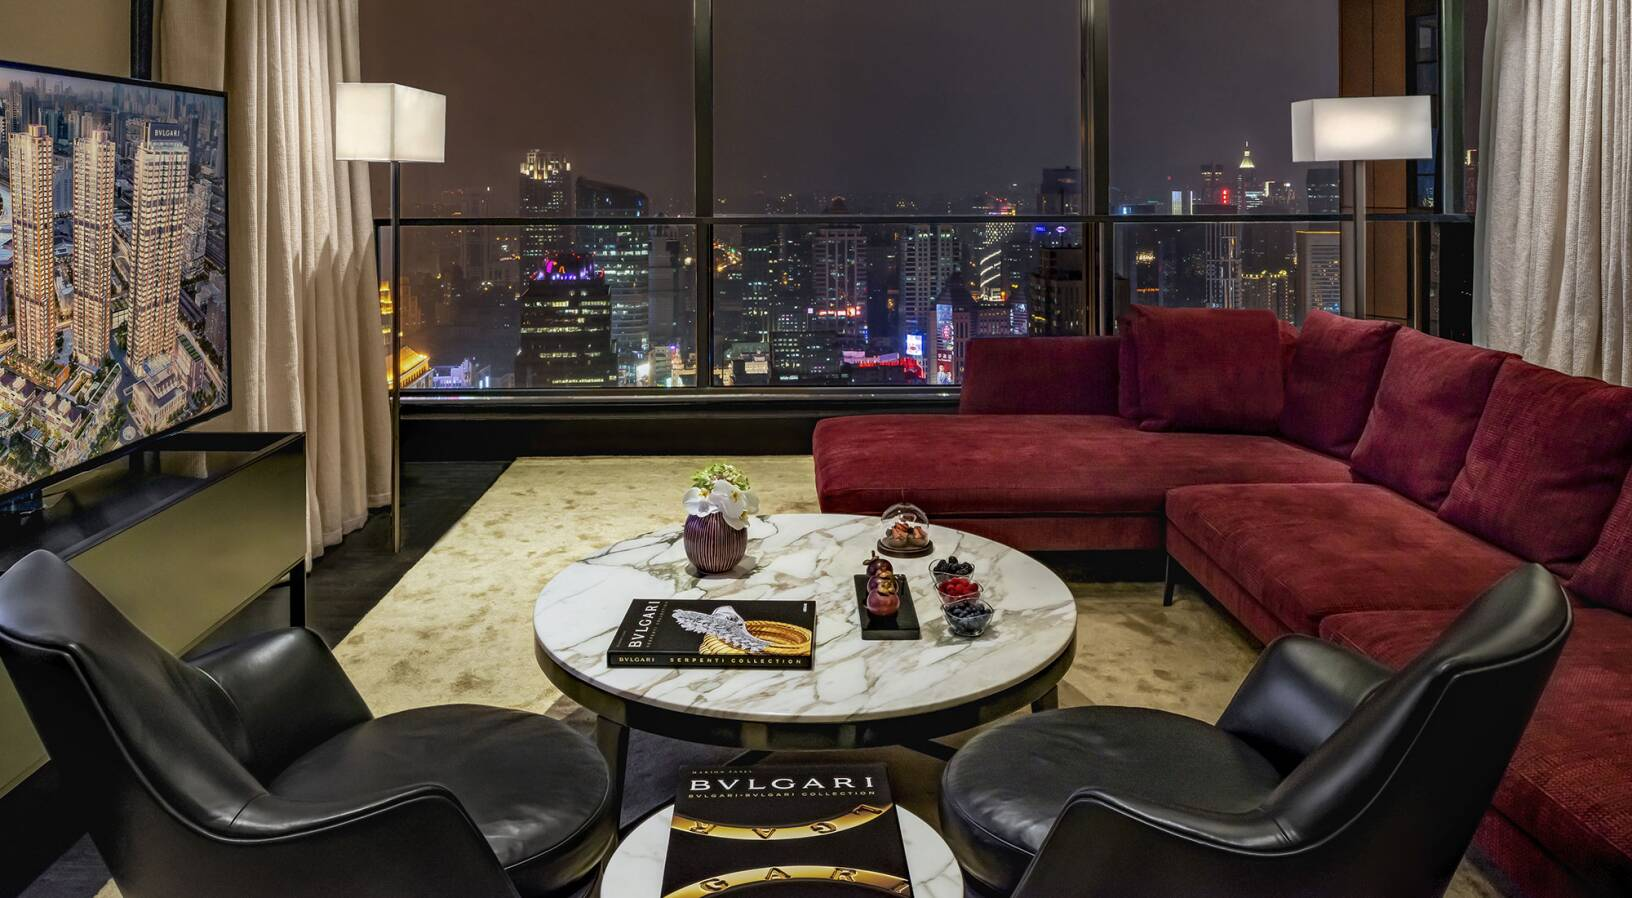 Bulgari luxury hotel collection grows with new property in ...